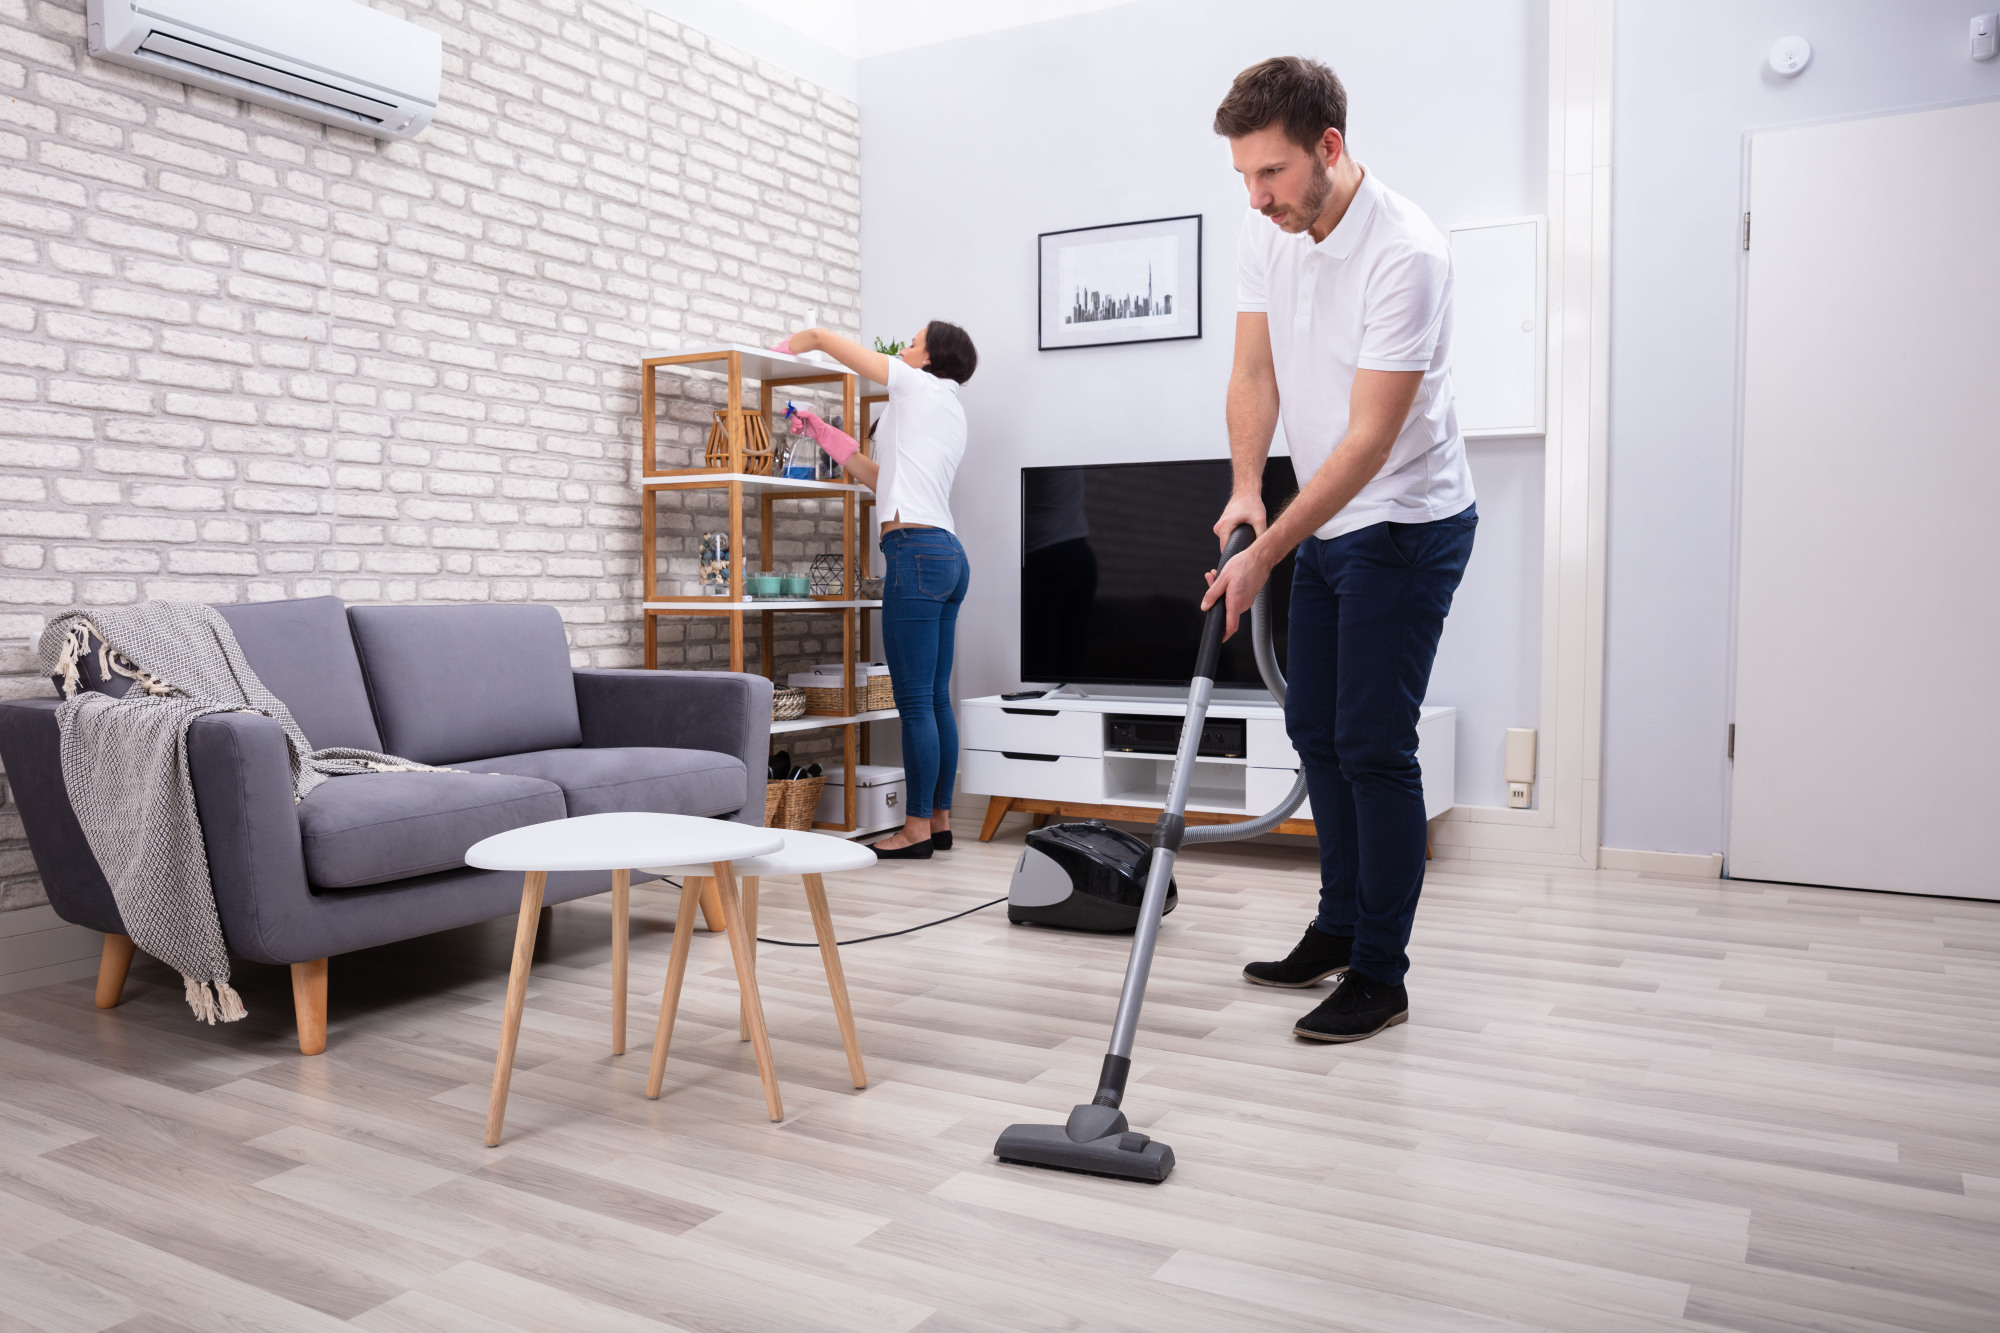 Married men help out with household chores far more now than their great-grandfathers did, but their wives still get stuck doing the lion's share of  housework. | GETTY IMAGES